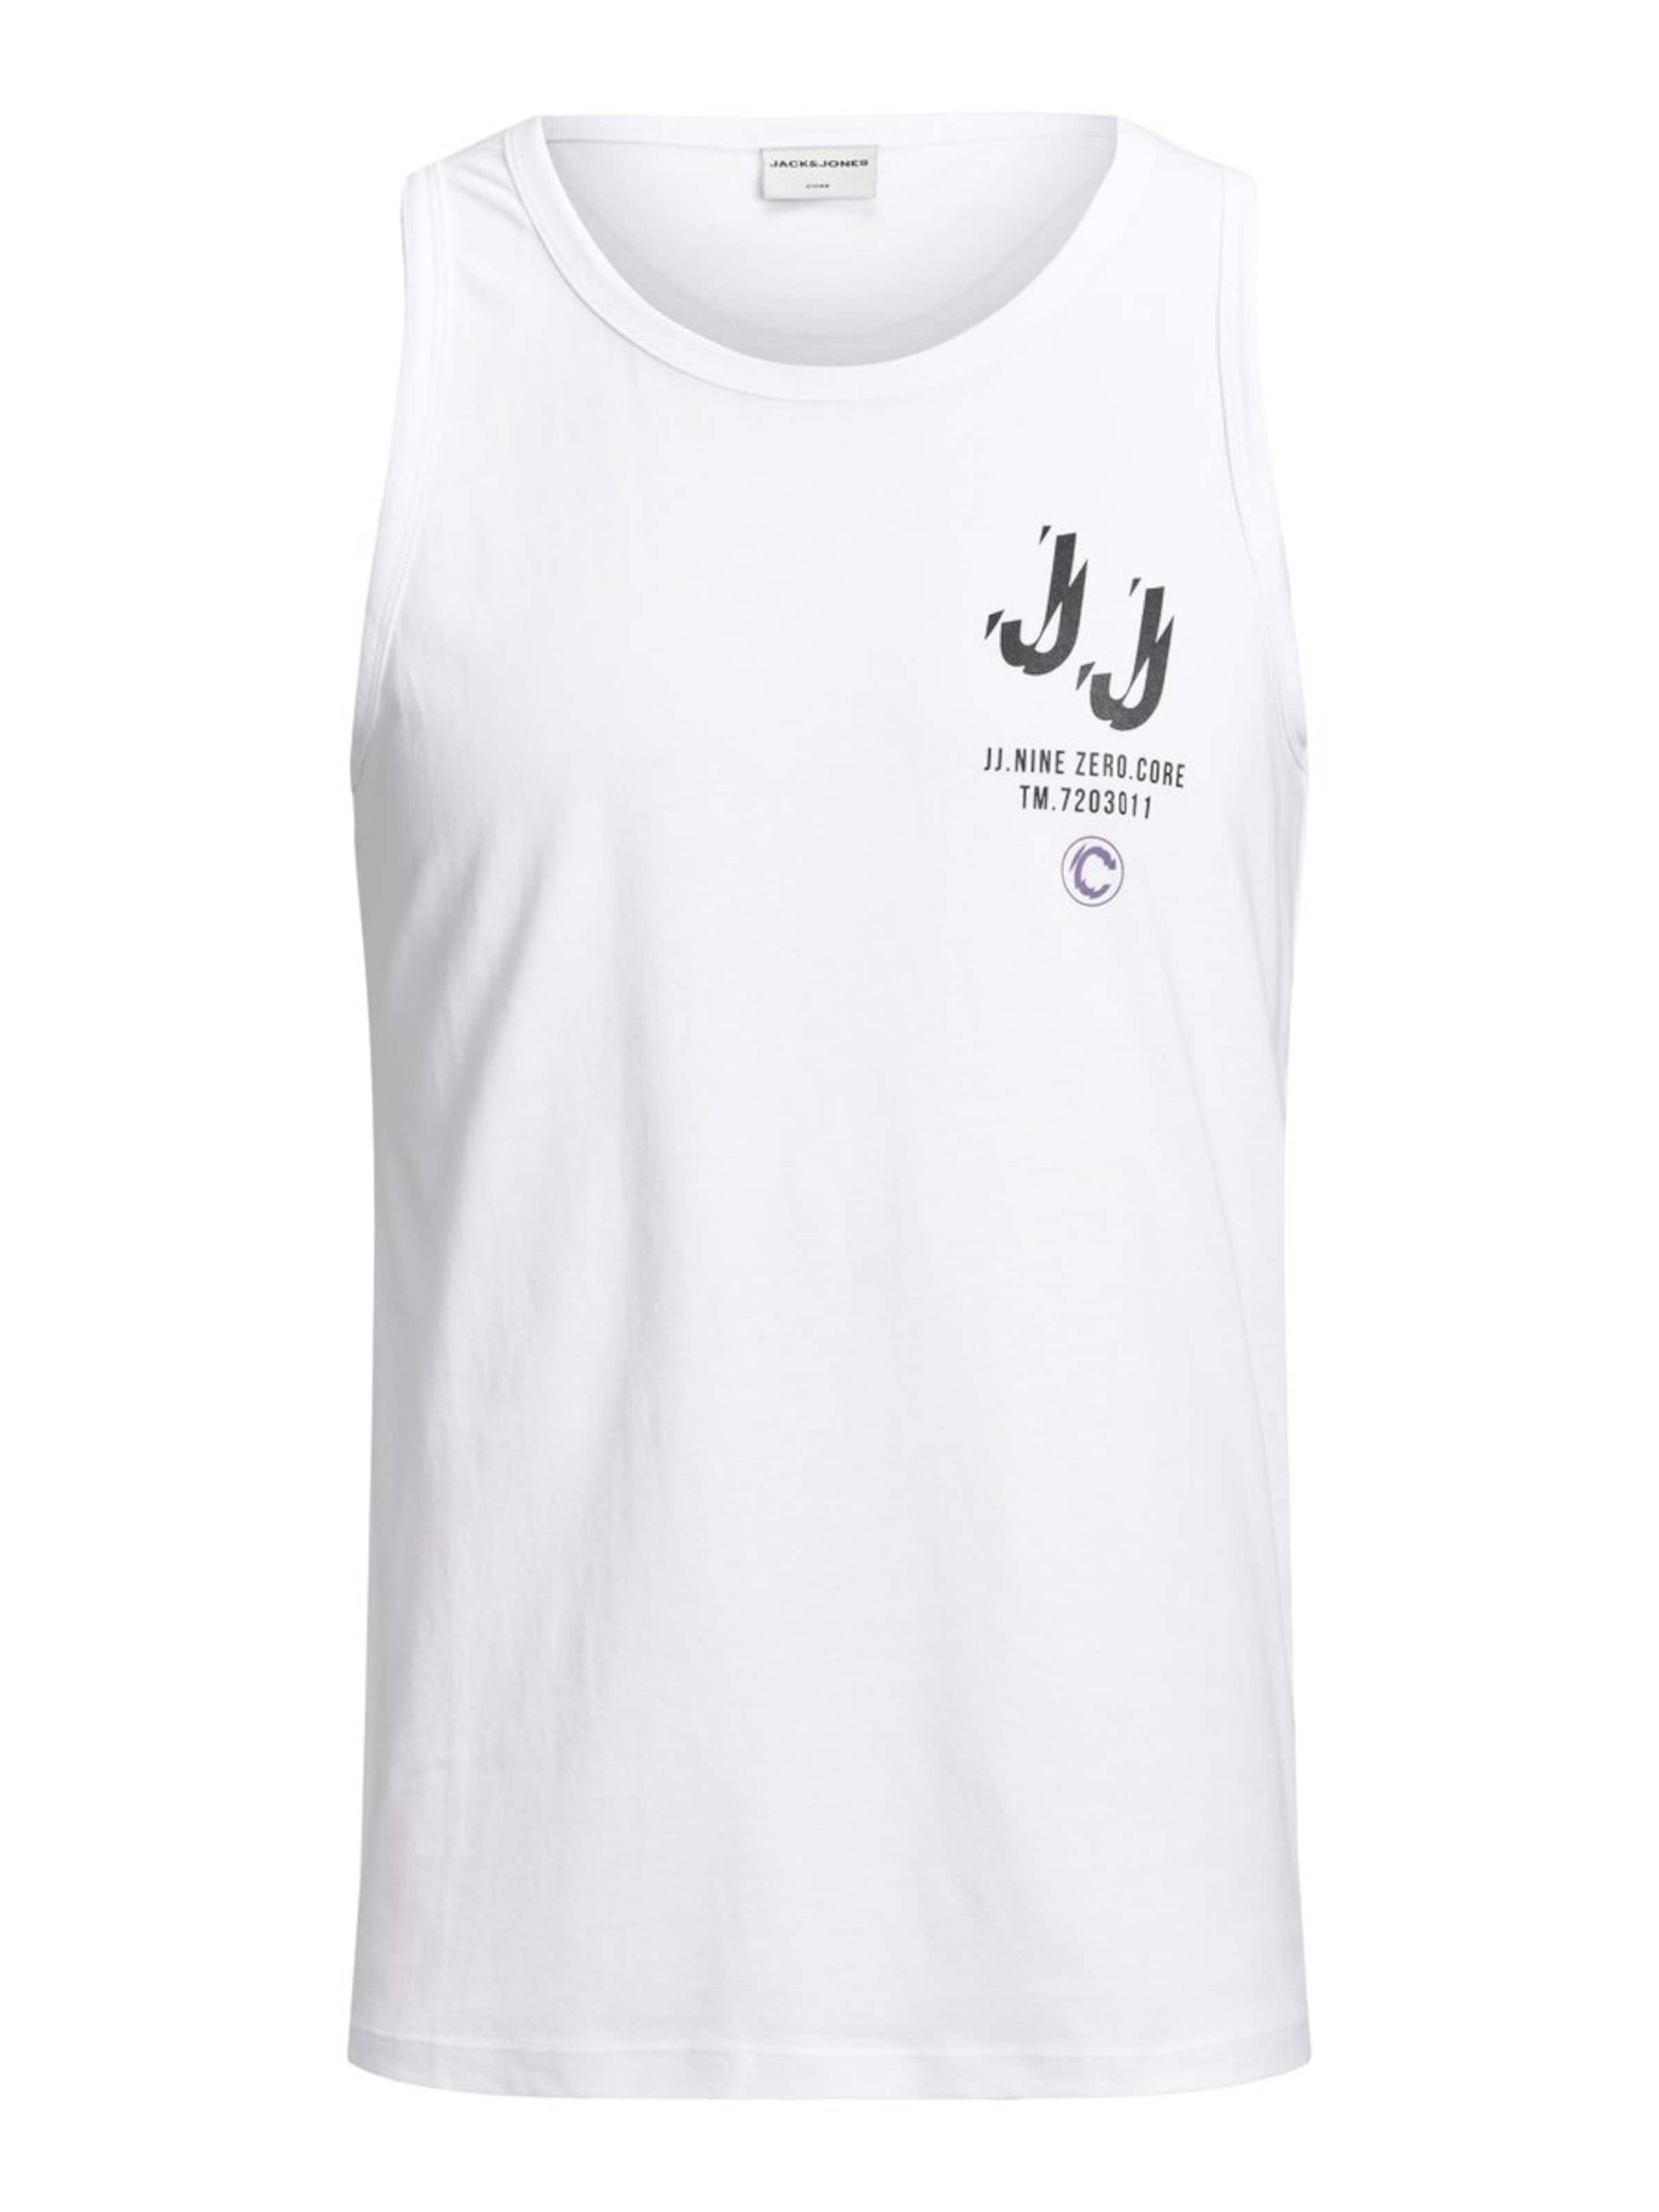 En Jones Jackamp; shirt PourpreNoir T Blanc qVSpUzMG